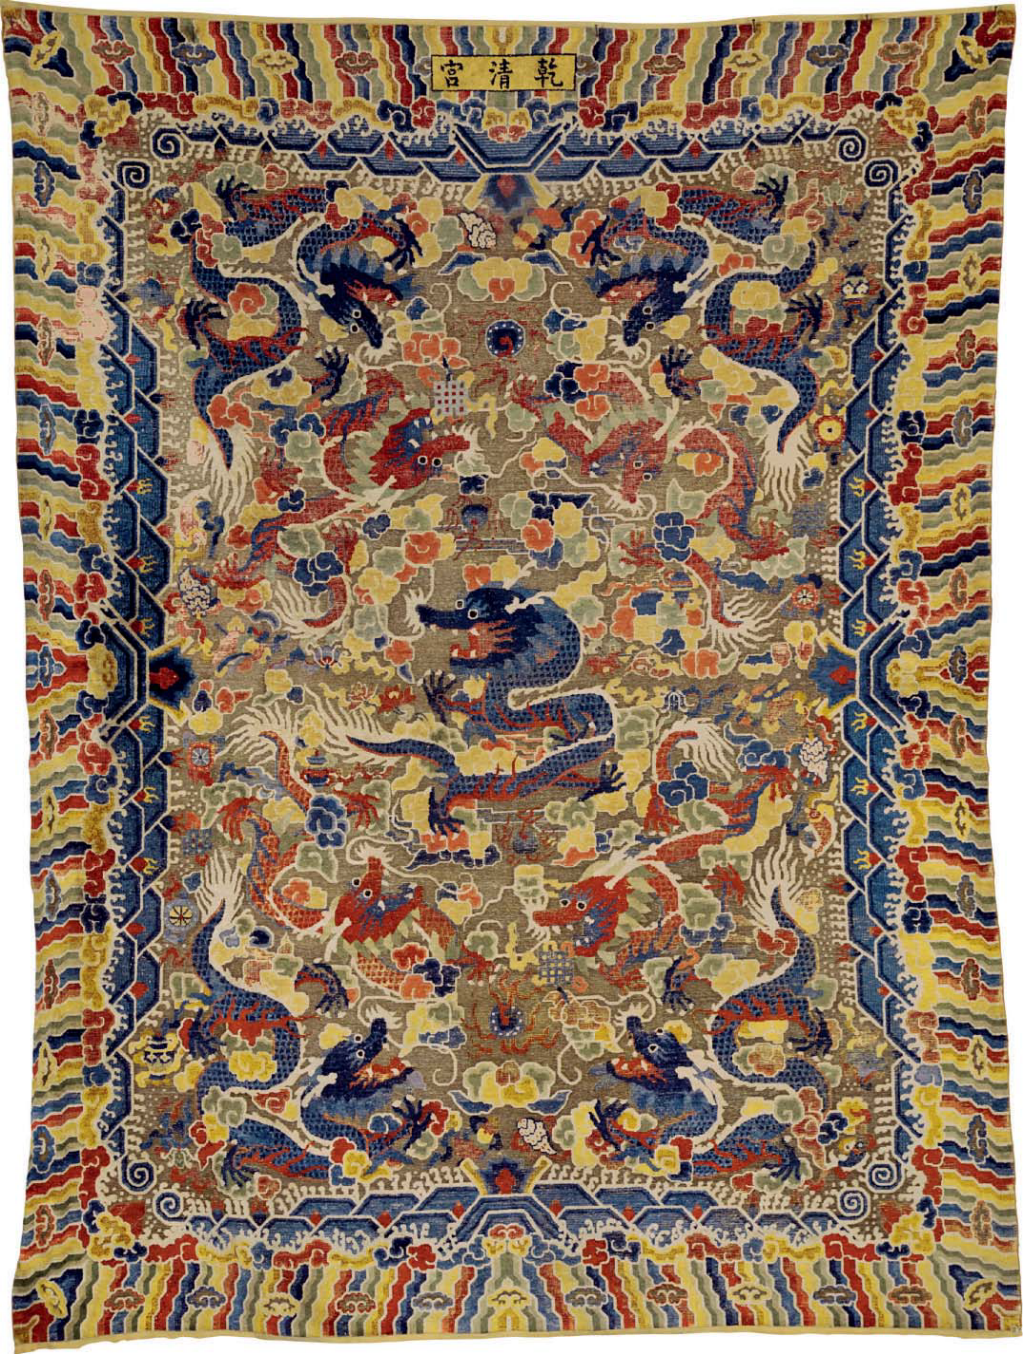 A Silk And Metal Thread Nine Dragon Chinese Carpet